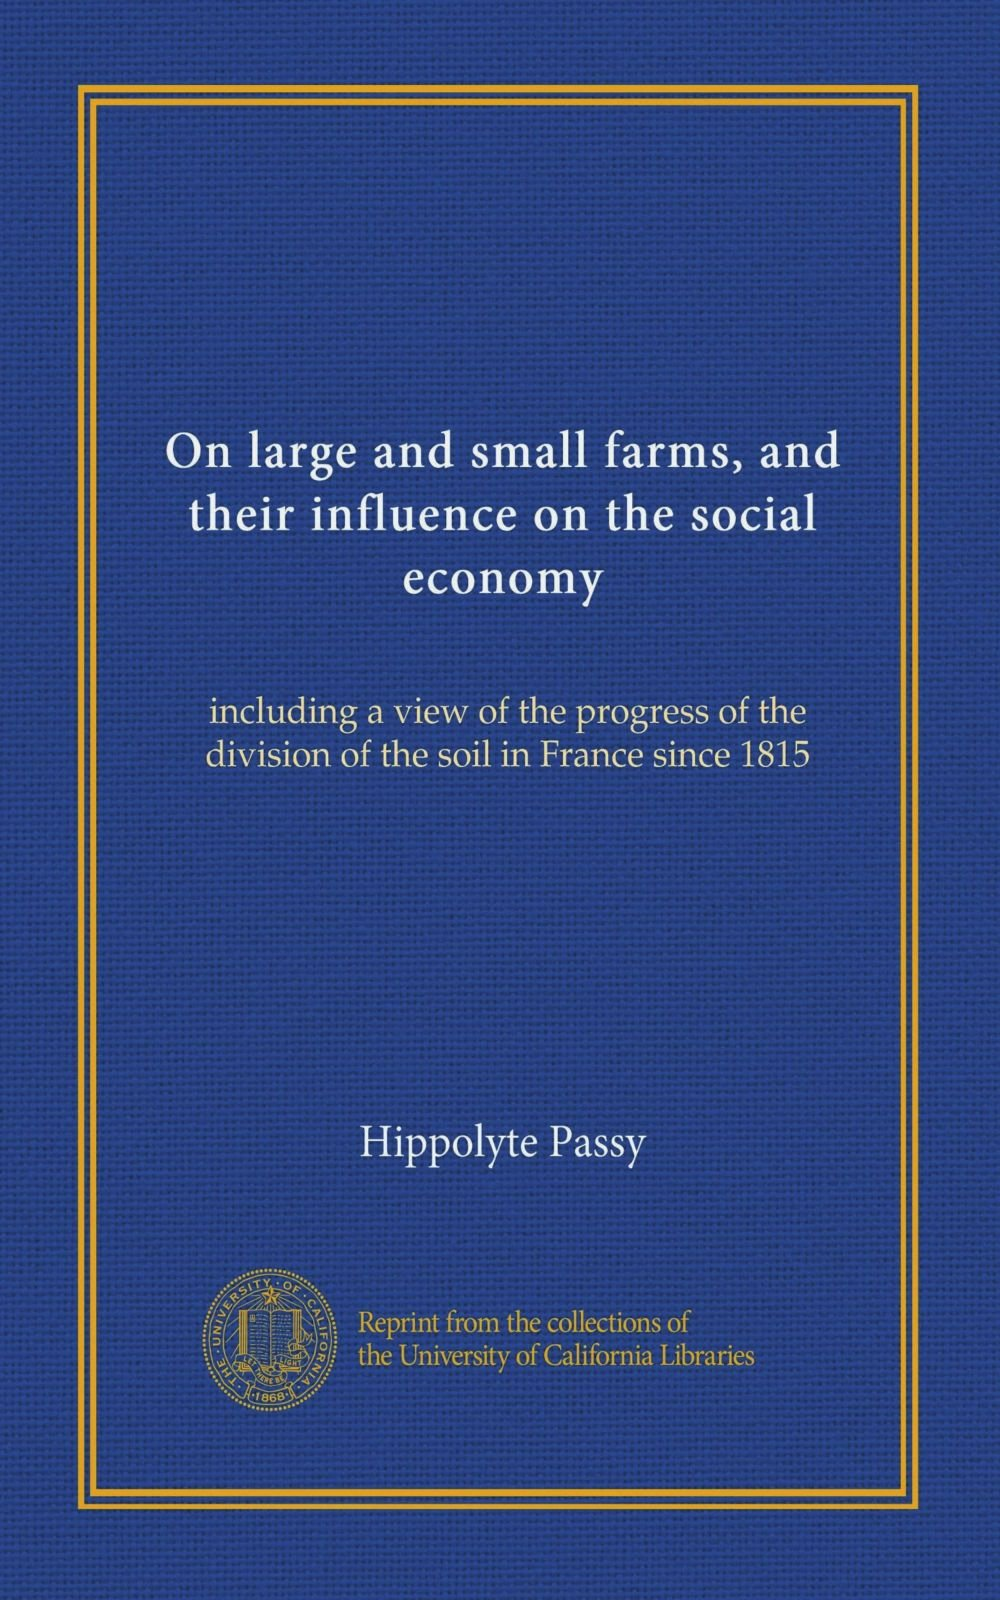 Download On large and small farms, and their influence on the social economy: including a view of the progress of the division of the soil in France since 1815 ebook